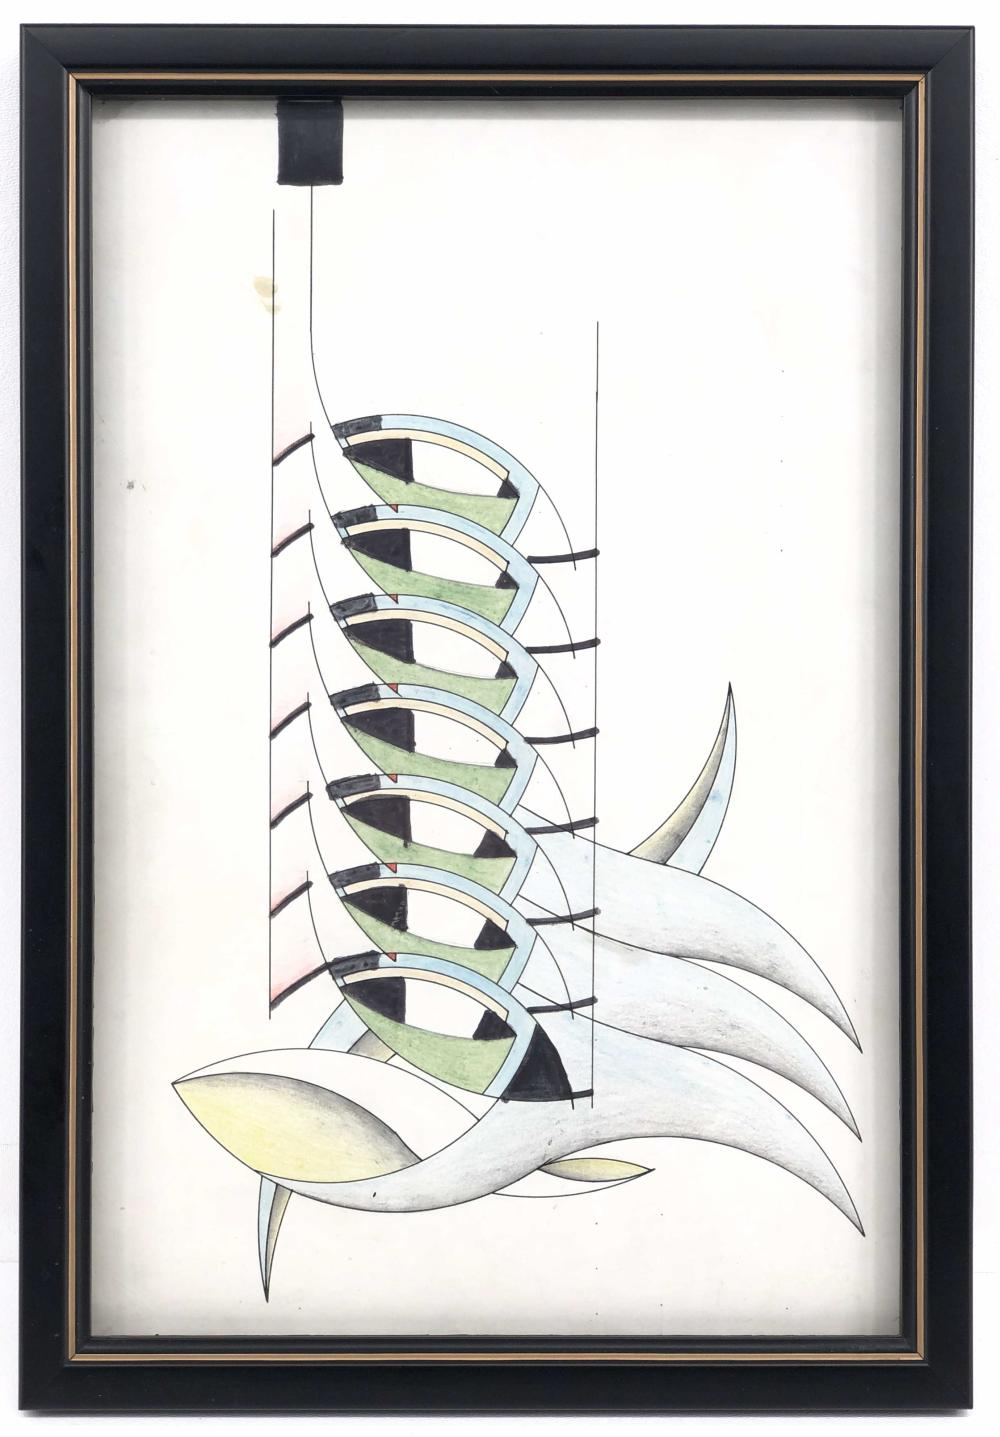 JACK JUSTICE MID-CENTURY COMPOSITION INK & COLORED PENCIL ON PAPER